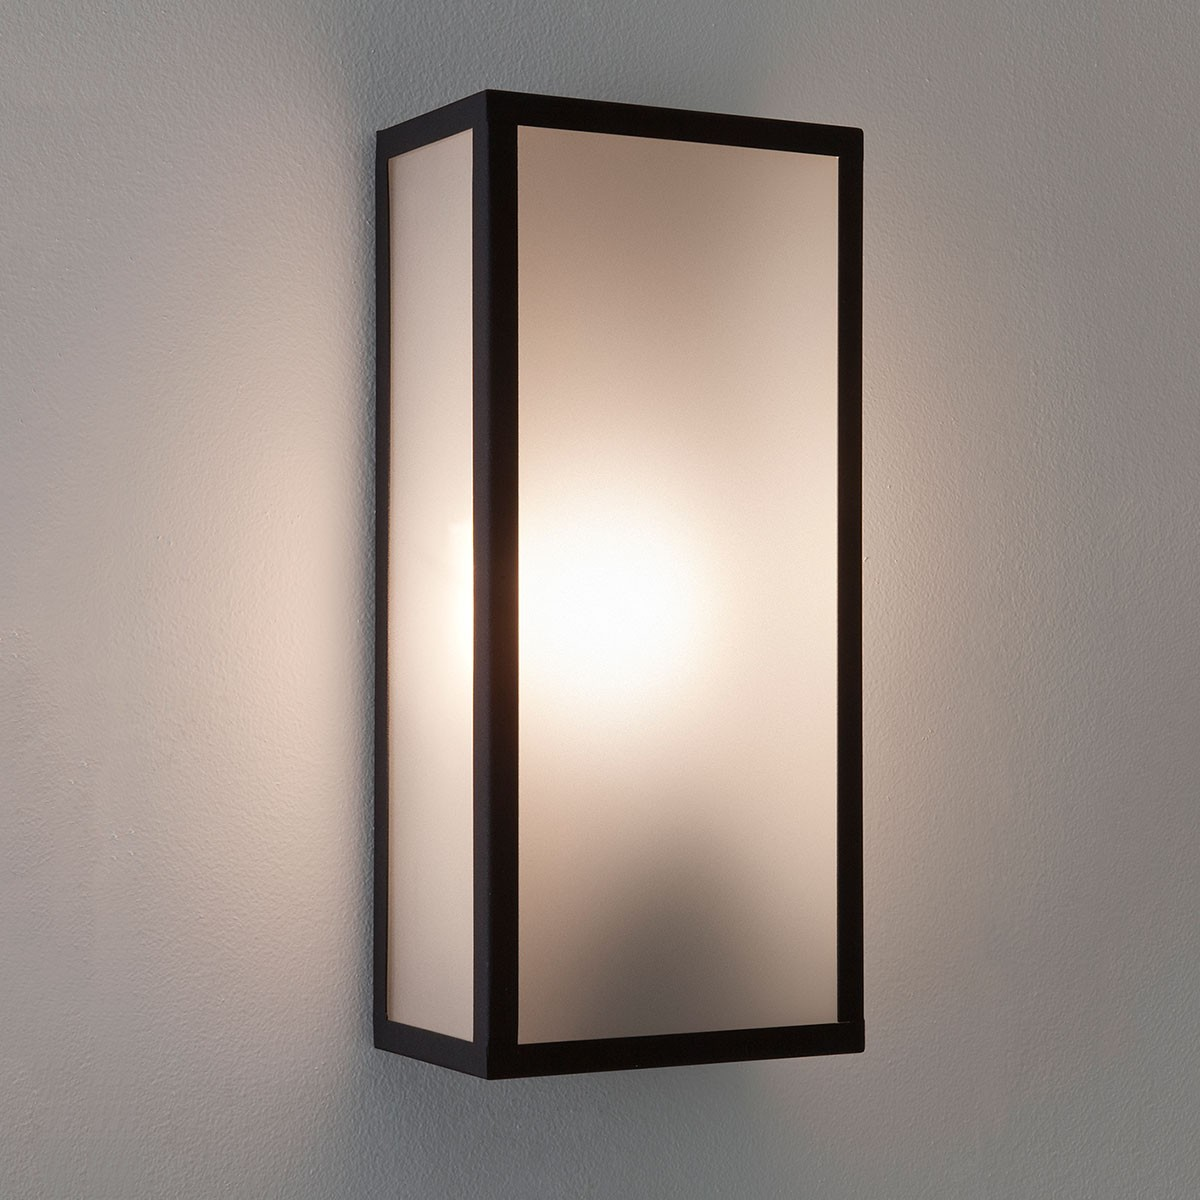 Astro messina sensor black outdoor wall light with motion - Eclairage mural exterieur ...